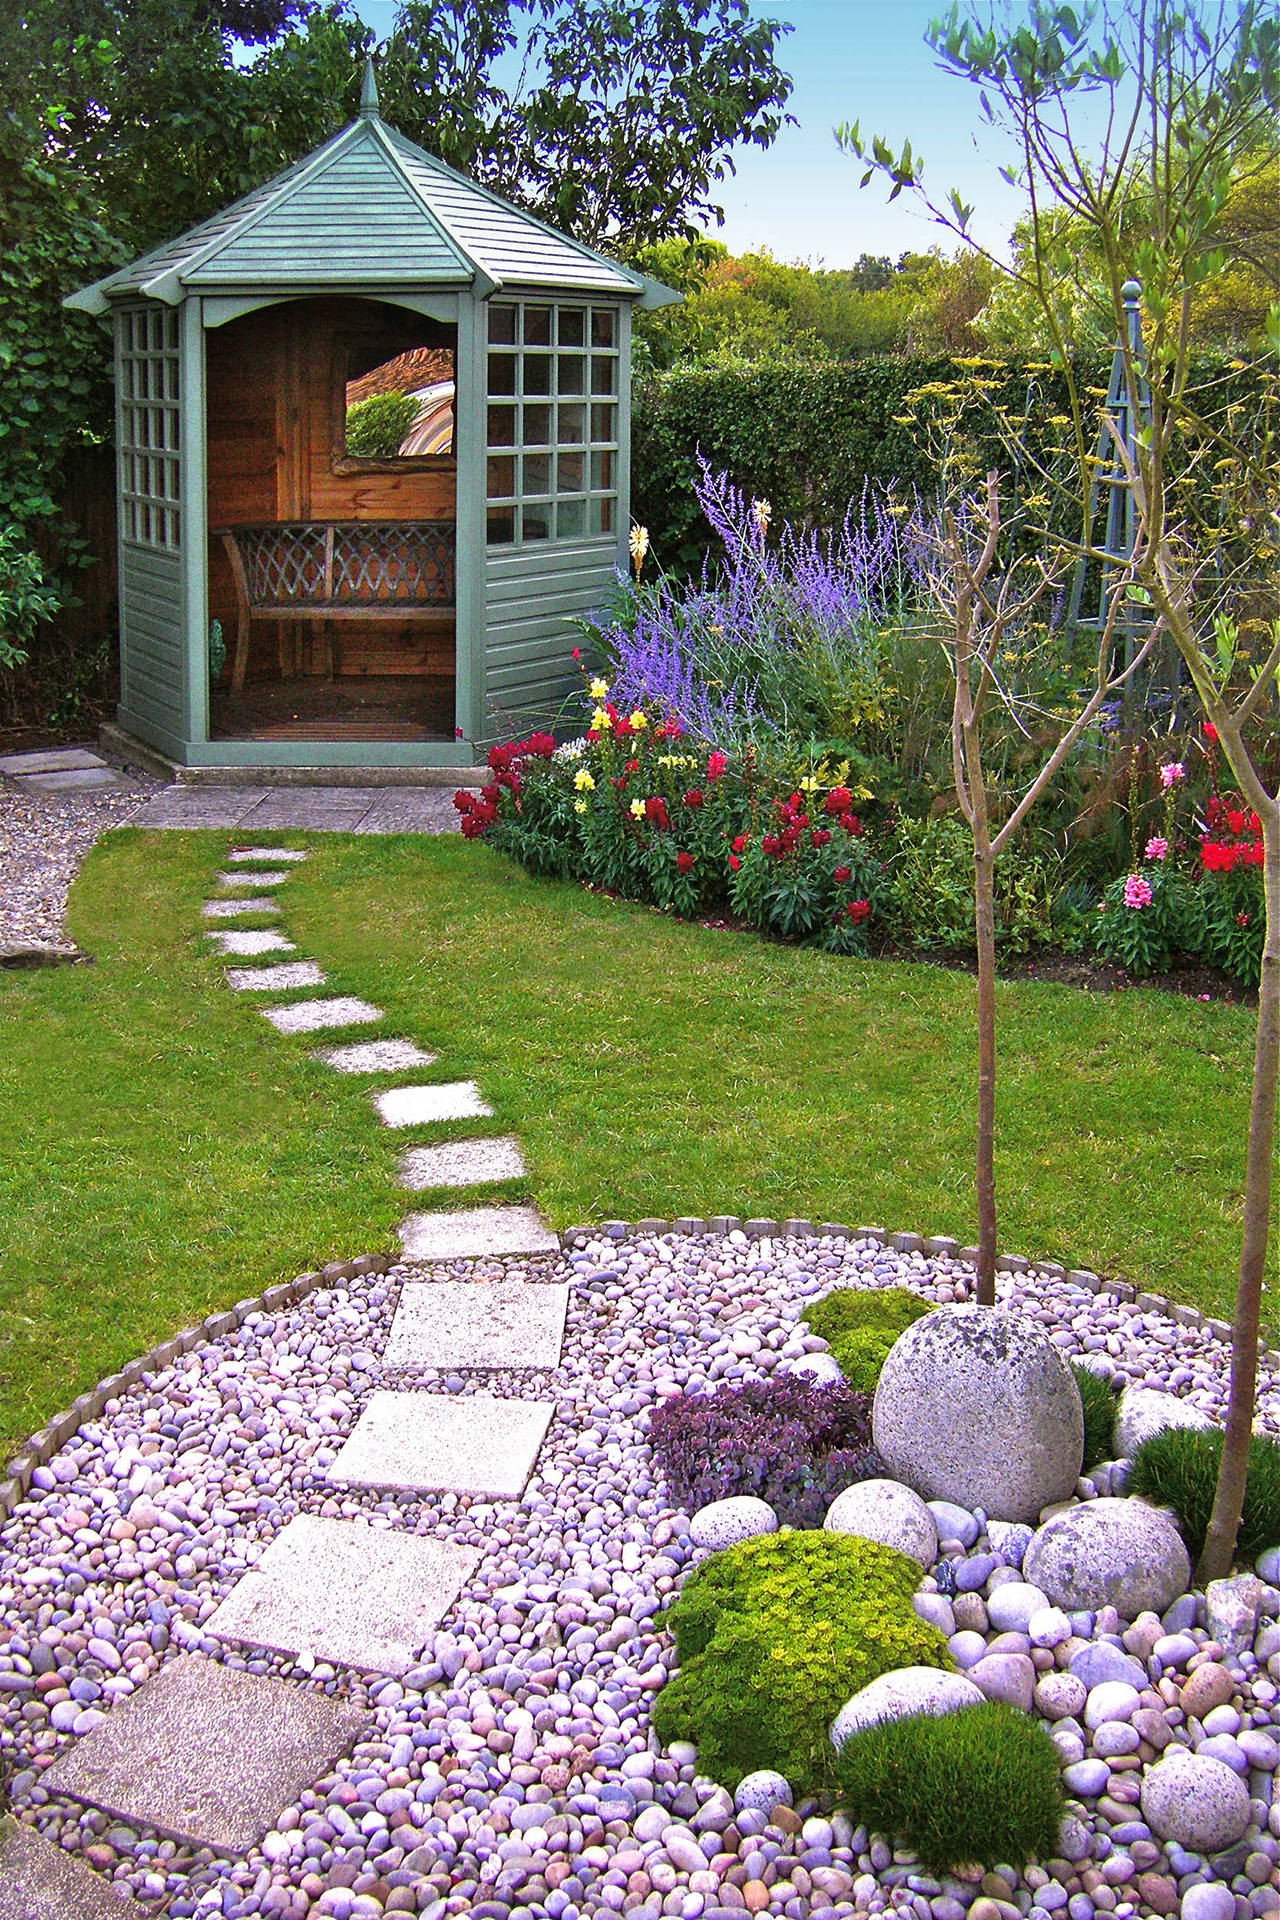 50 Best Backyard Landscaping Ideas And Designs In 2019 intended for 13 Clever Concepts of How to Make Landscaping For A Small Backyard